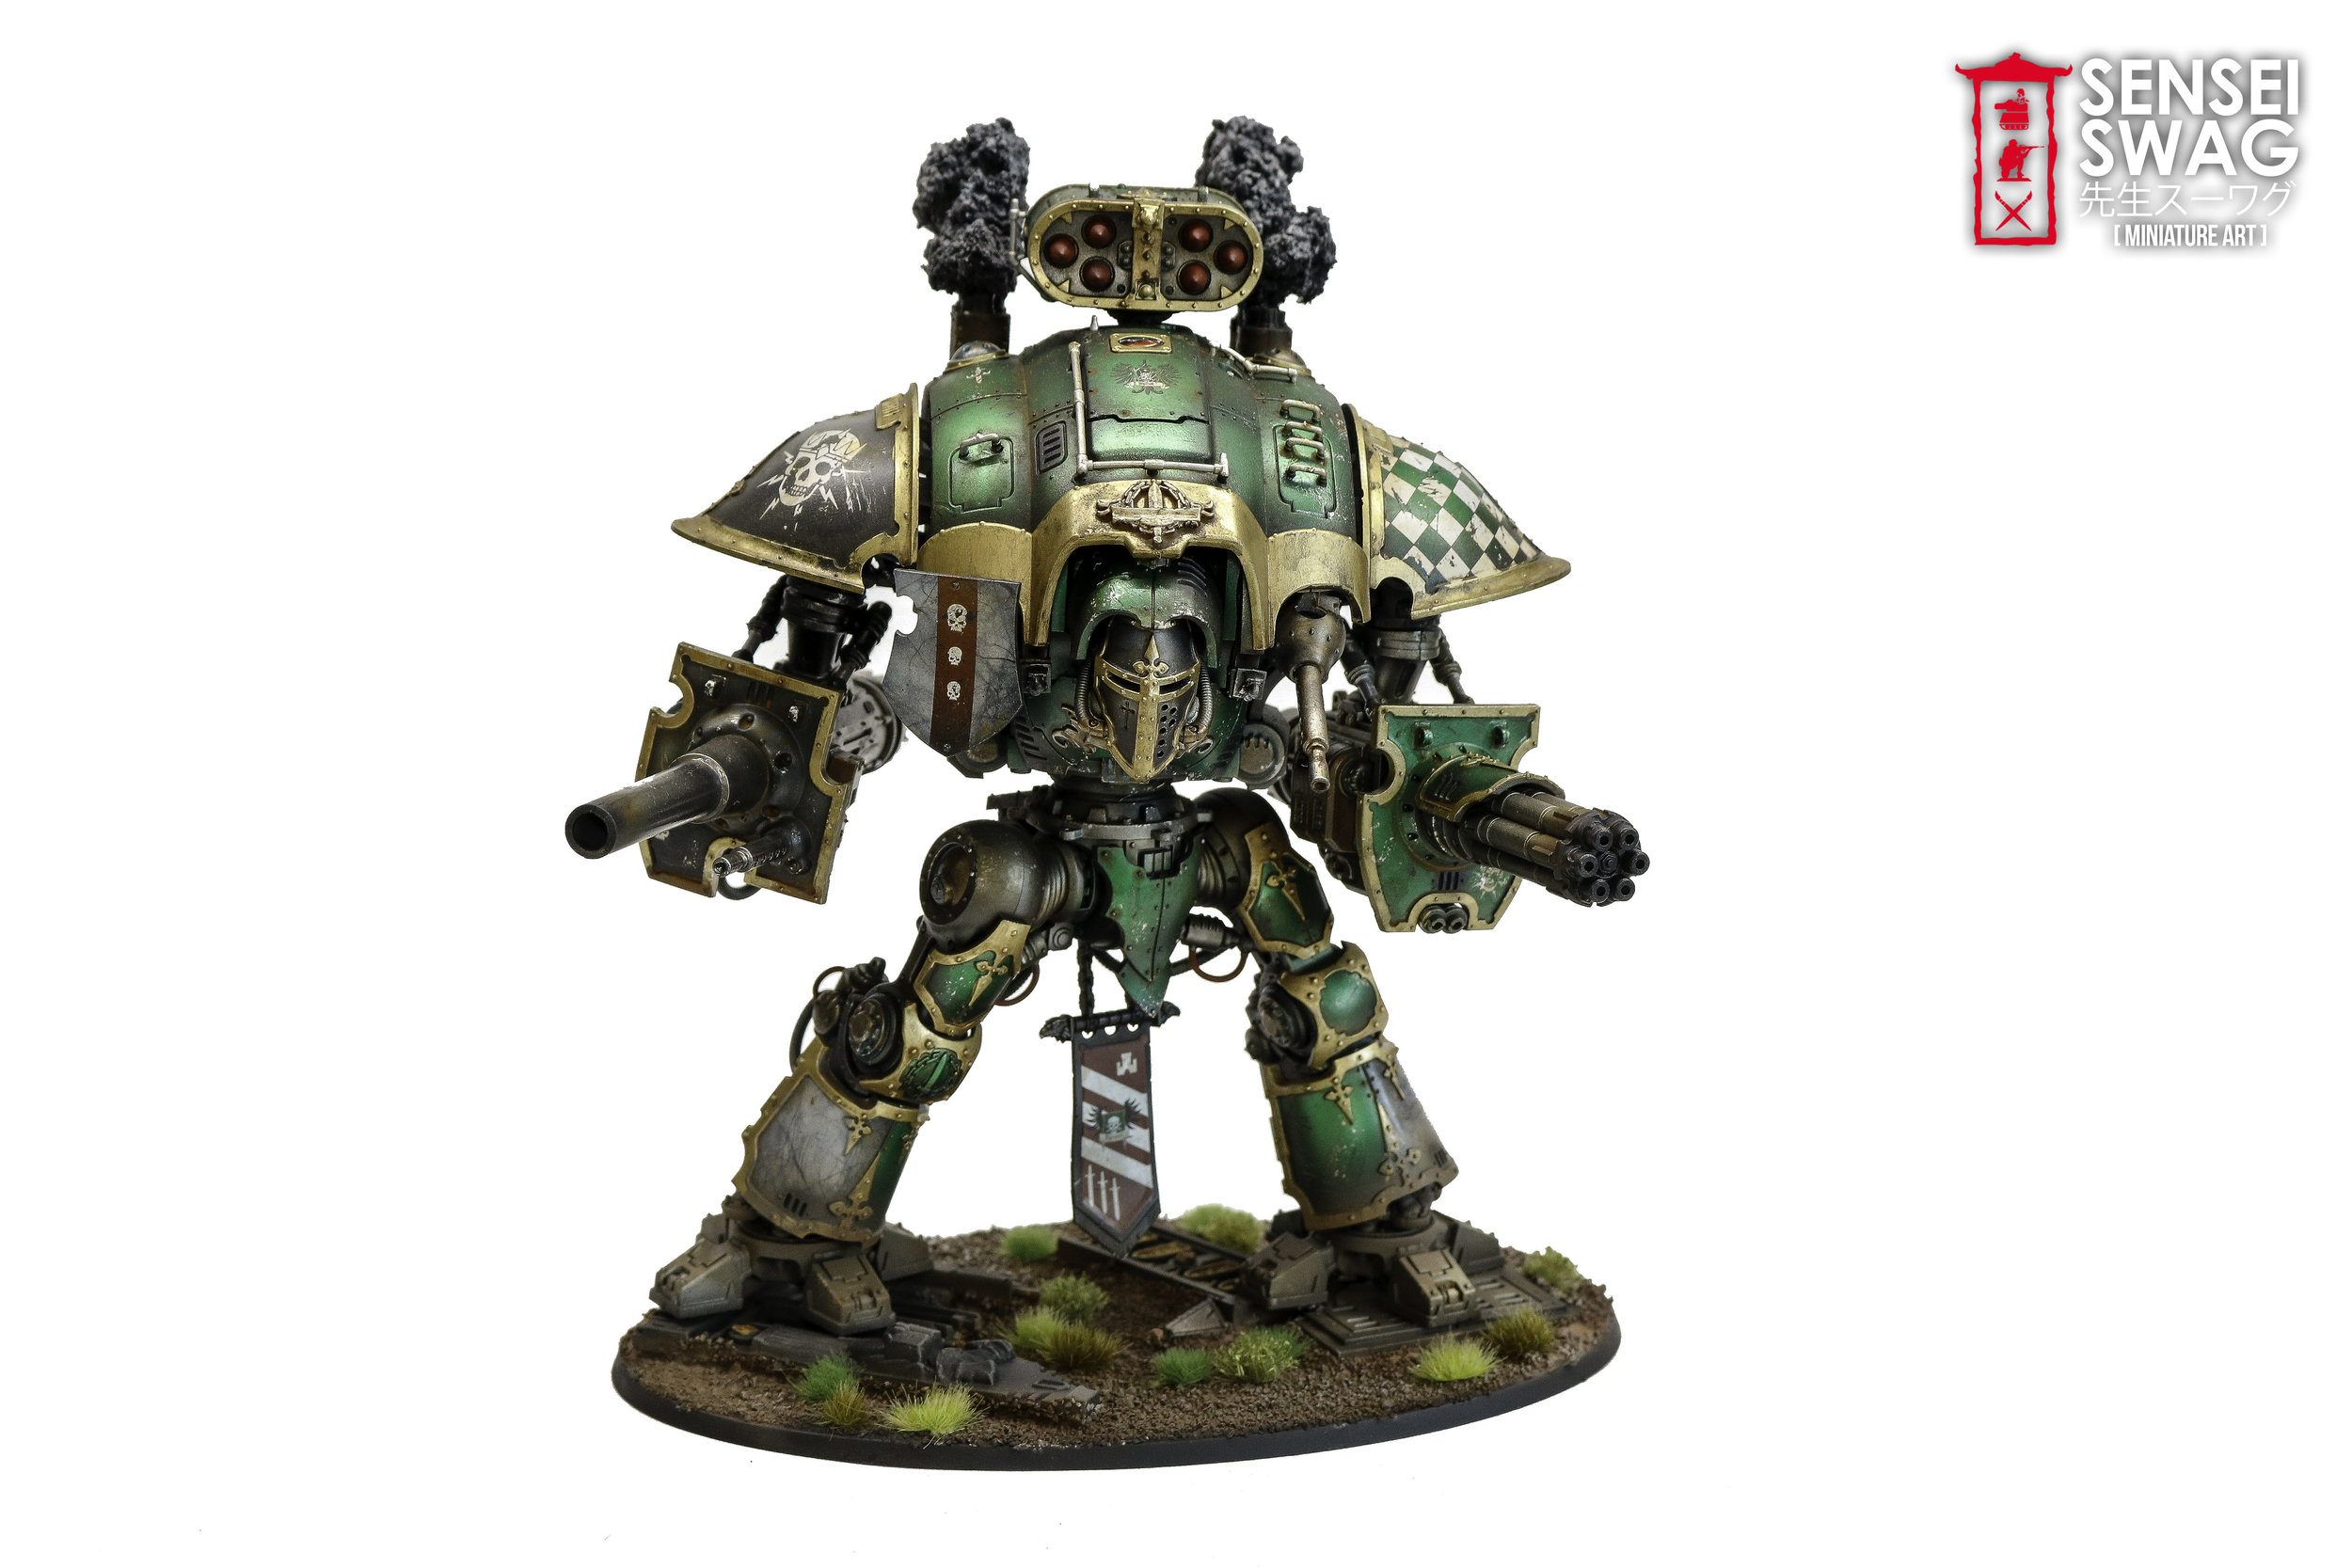 House Vyronii Imperial Knights Crusader Candy Airbrush Watermark-3.jpg